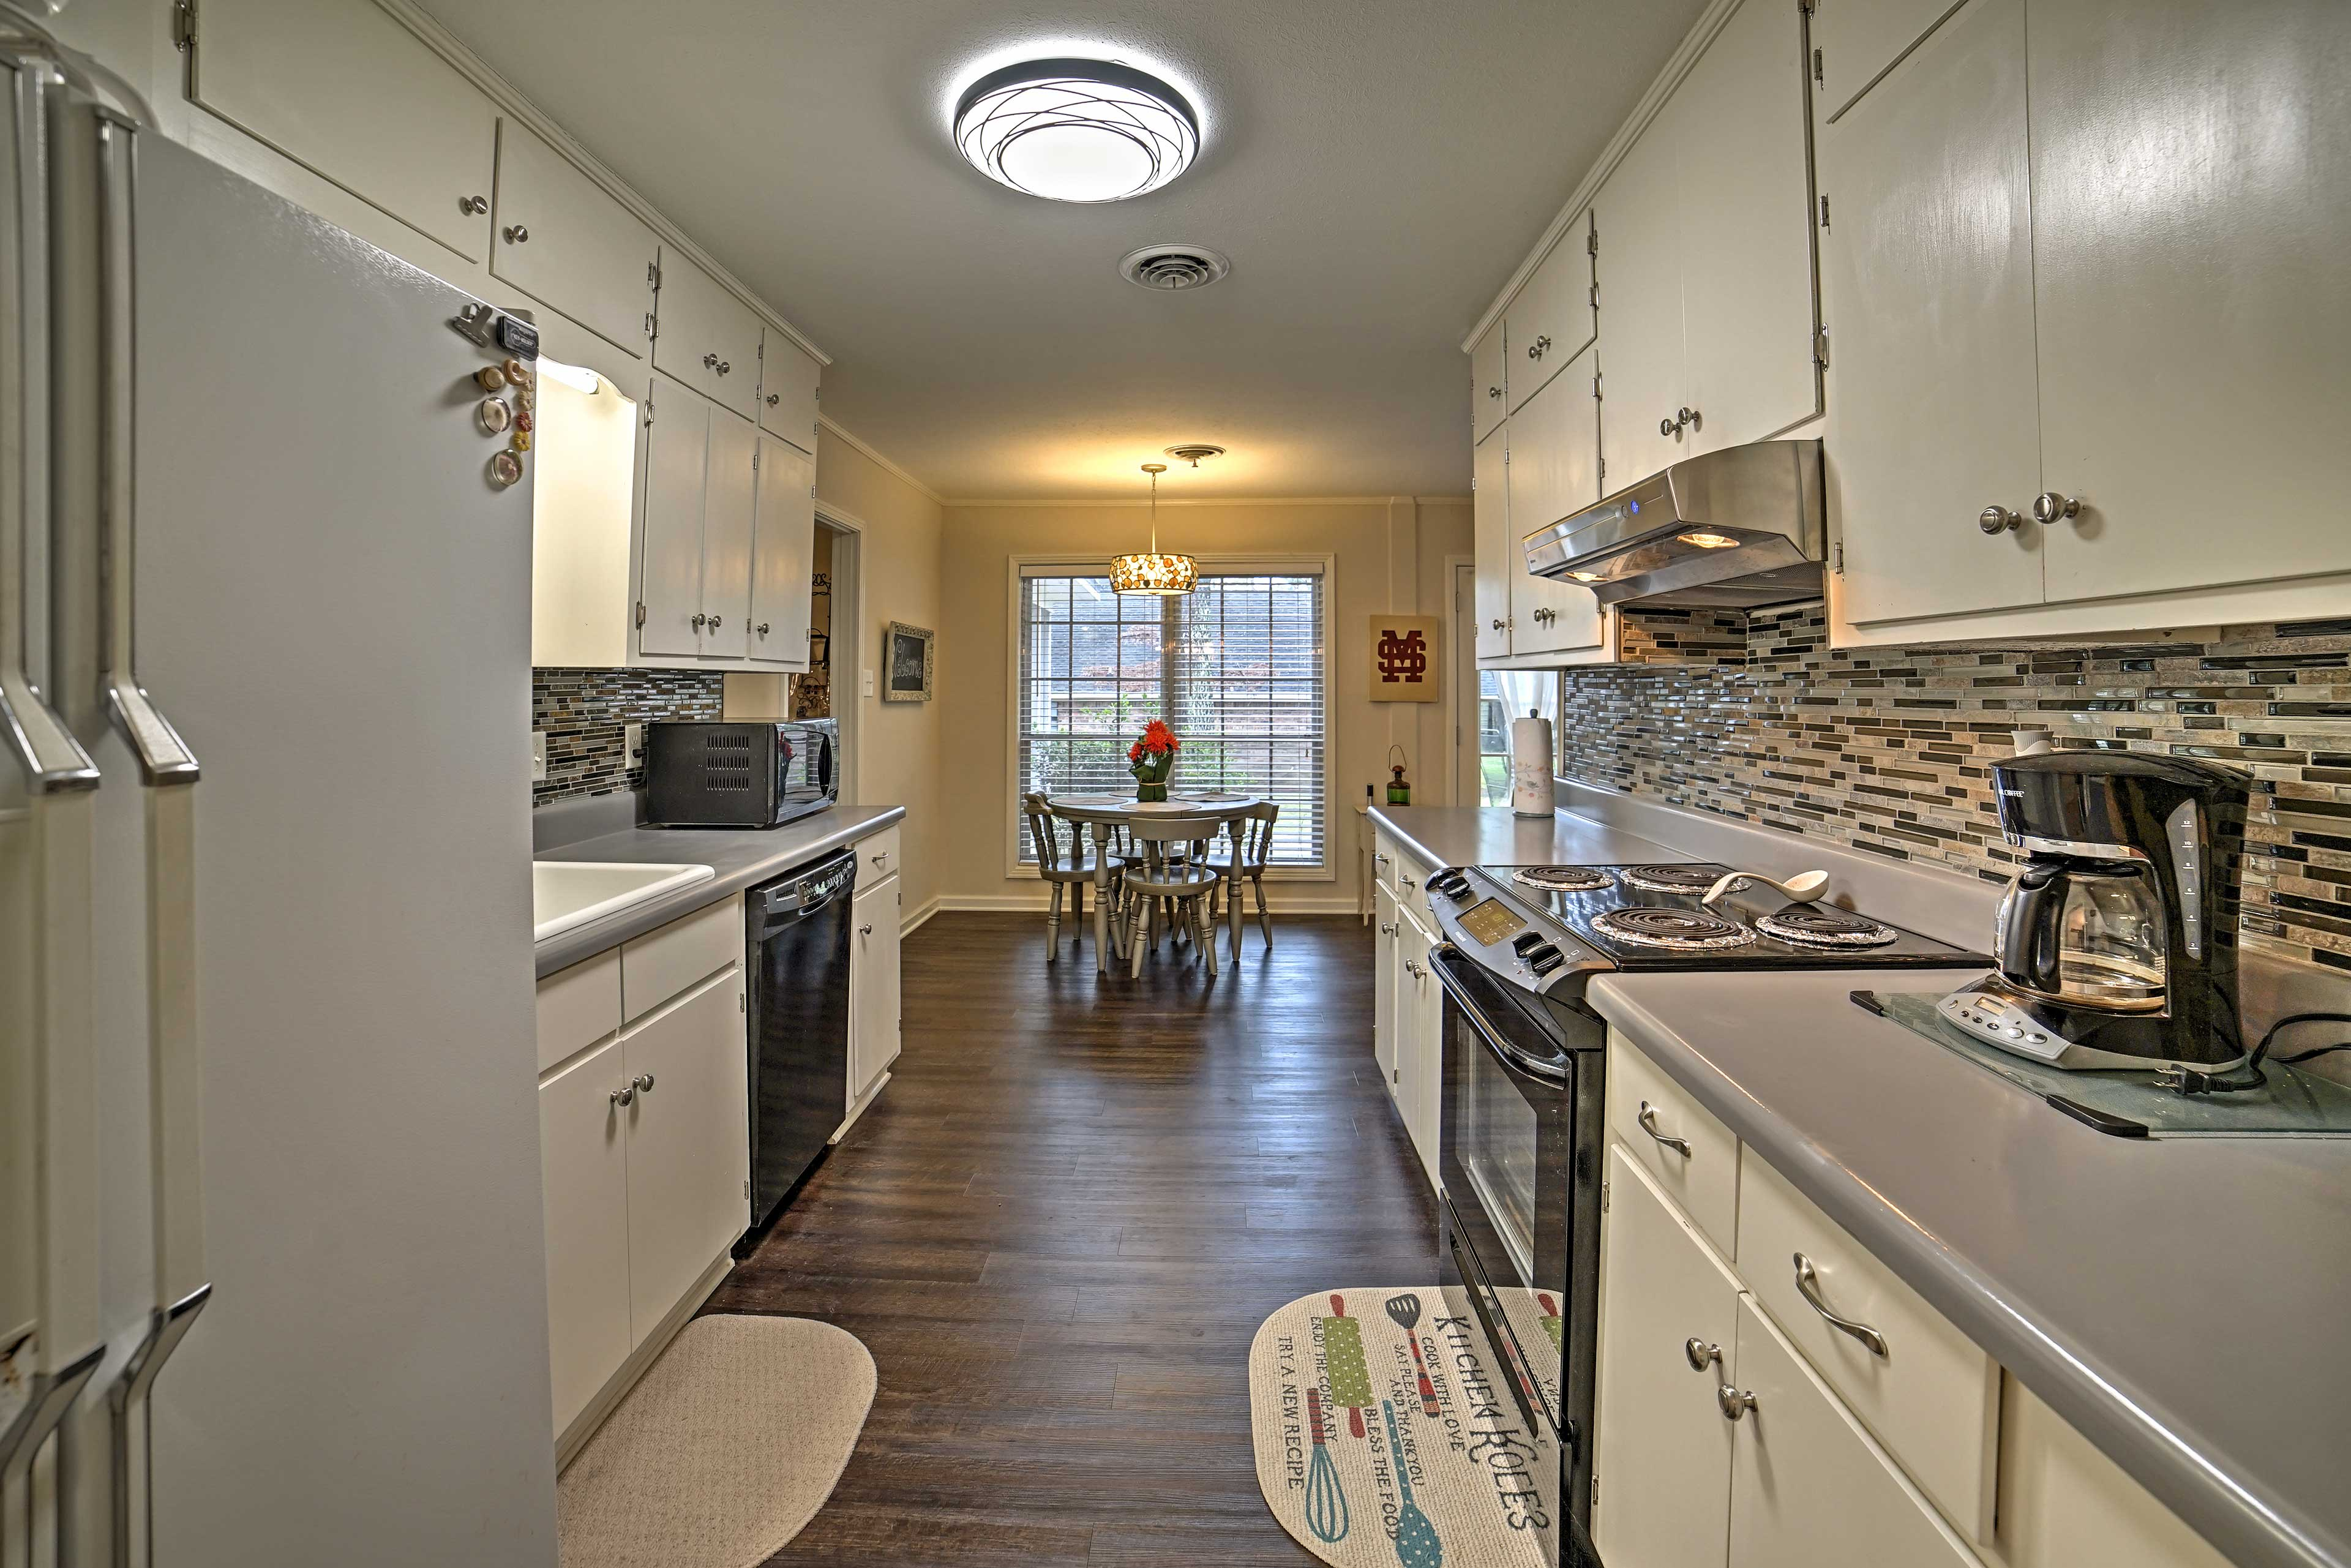 The fully equipped kitchen has everything you need to prepare your favorites.